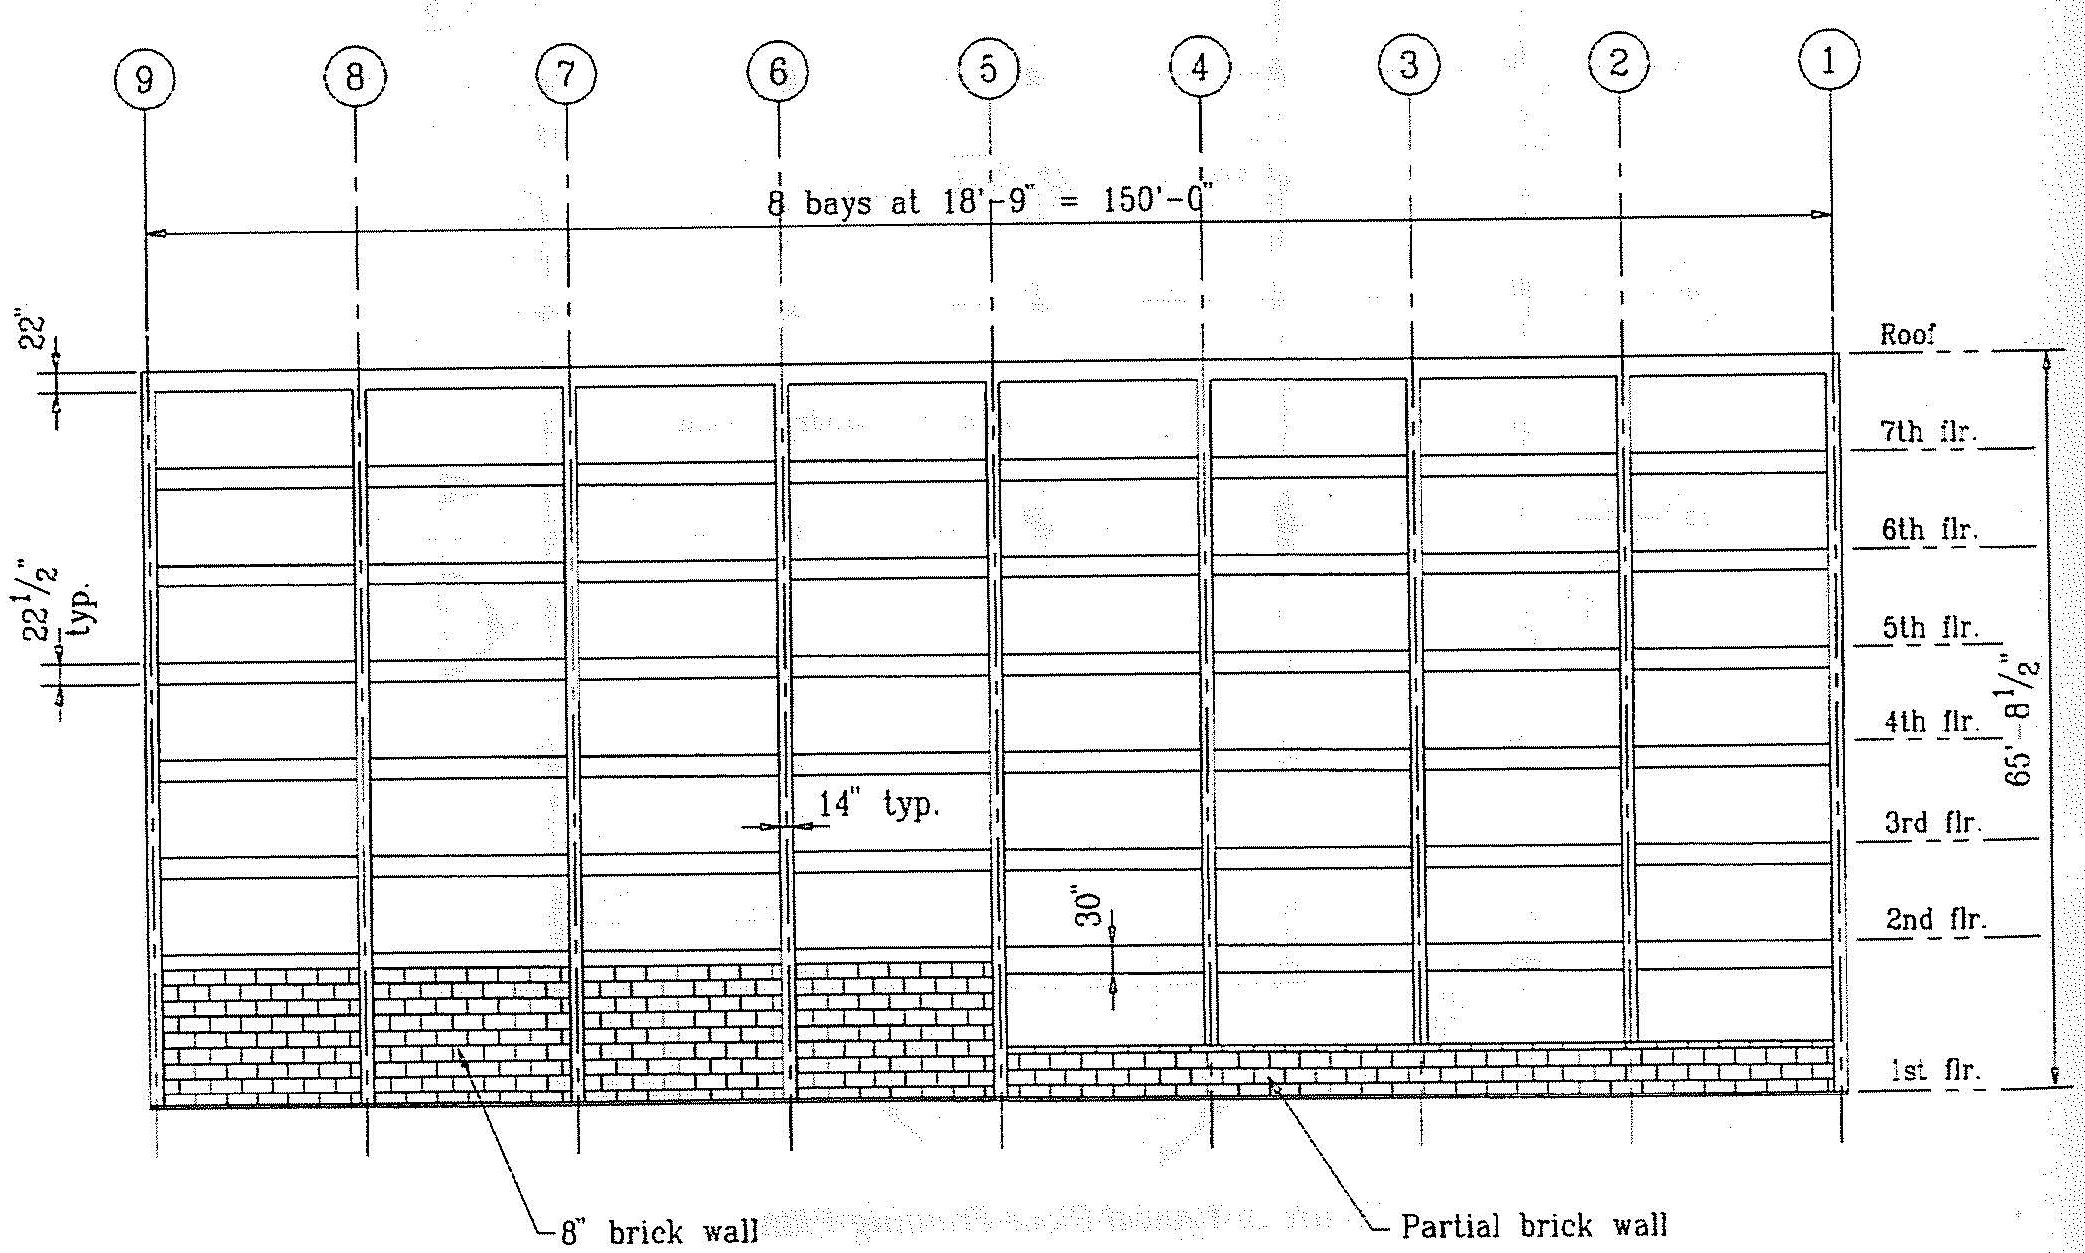 North perimeter frame elevation. (SSC, 1994)